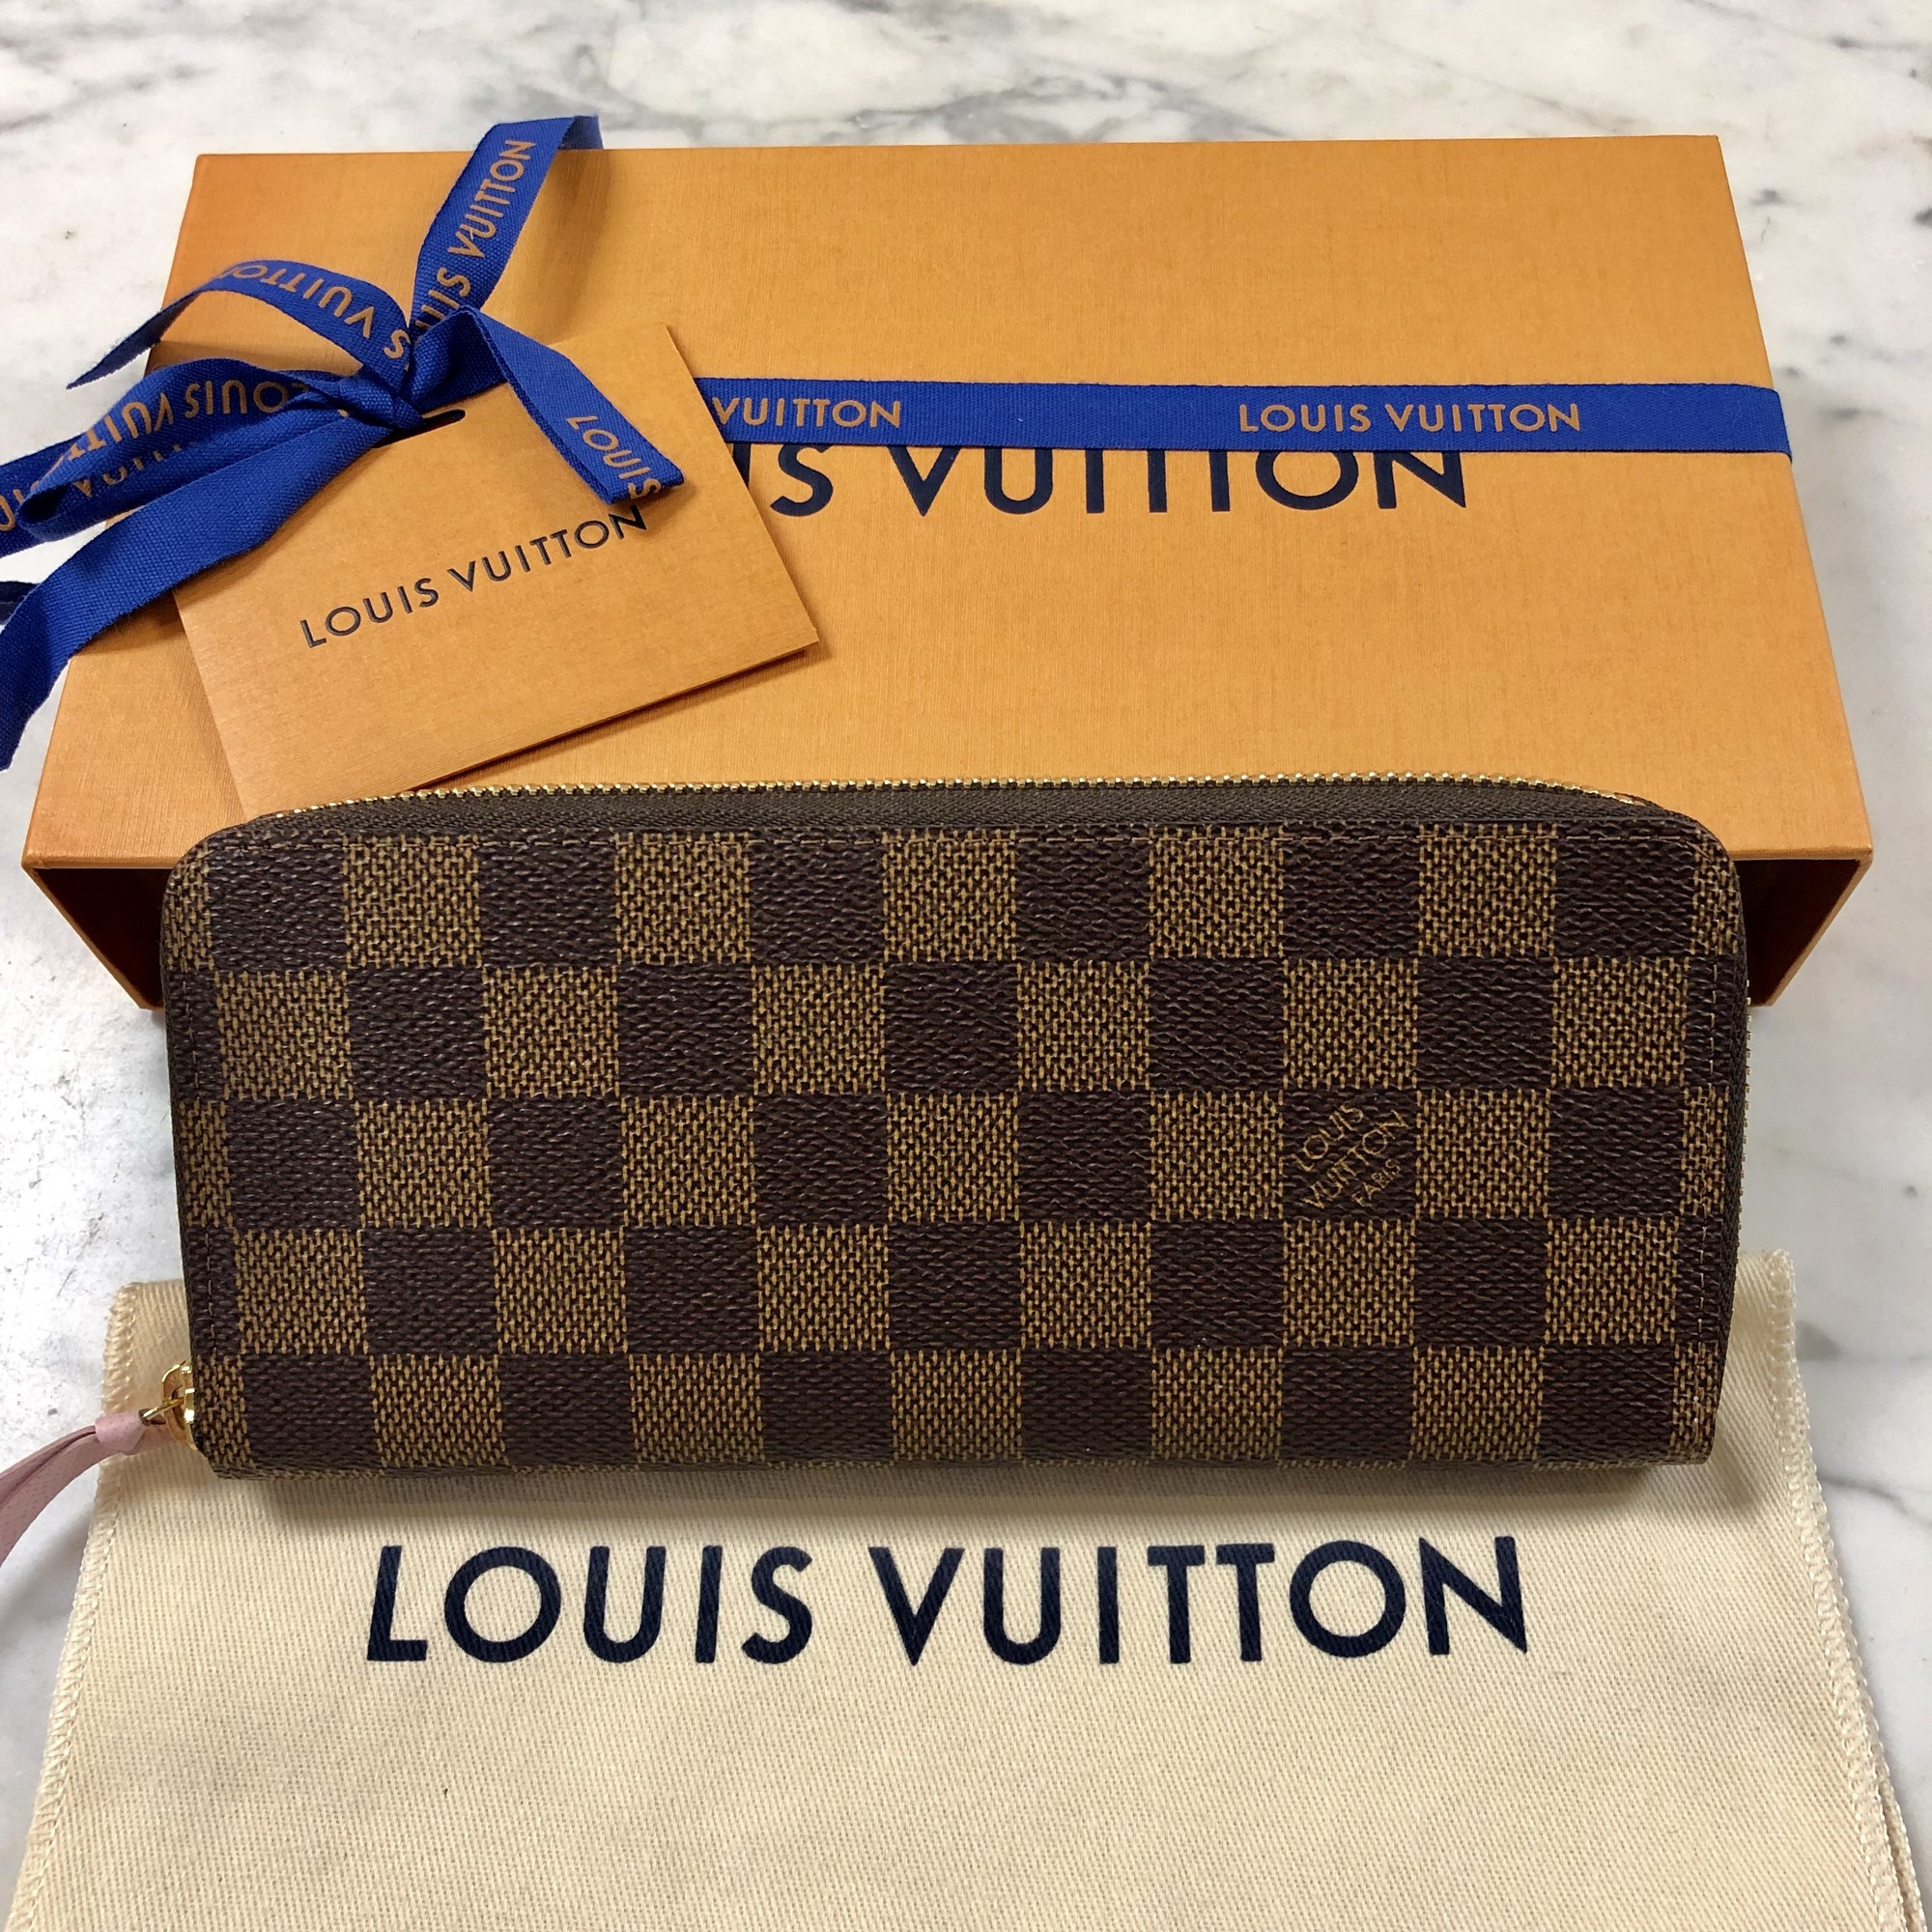 "Louis Vuitton Clements Wallet<br /> Compact yet with high capacity. Playful feminity is also part of its charm with its beautiful colored lining and leather zipper<br /> Color: Brown Checkered with Rose Ballerine (light pink) zipper pull and interior.<br /> Size: 7.7"" x 3.5"" x 0.6""<br /> Material: Coated Canvas, Grained Cowhide Leather lining and trim. New with tags, Box, Papers, Dust Cover.<br /> Gold color metal pieces.<br /> 8 Credit Card Slots<br /> 1 Zippered Coin Pocket<br /> 2 large Gussetted Compartments<br /> 2 Inside Flat Pockets<br /> 1 Leather Zipper"